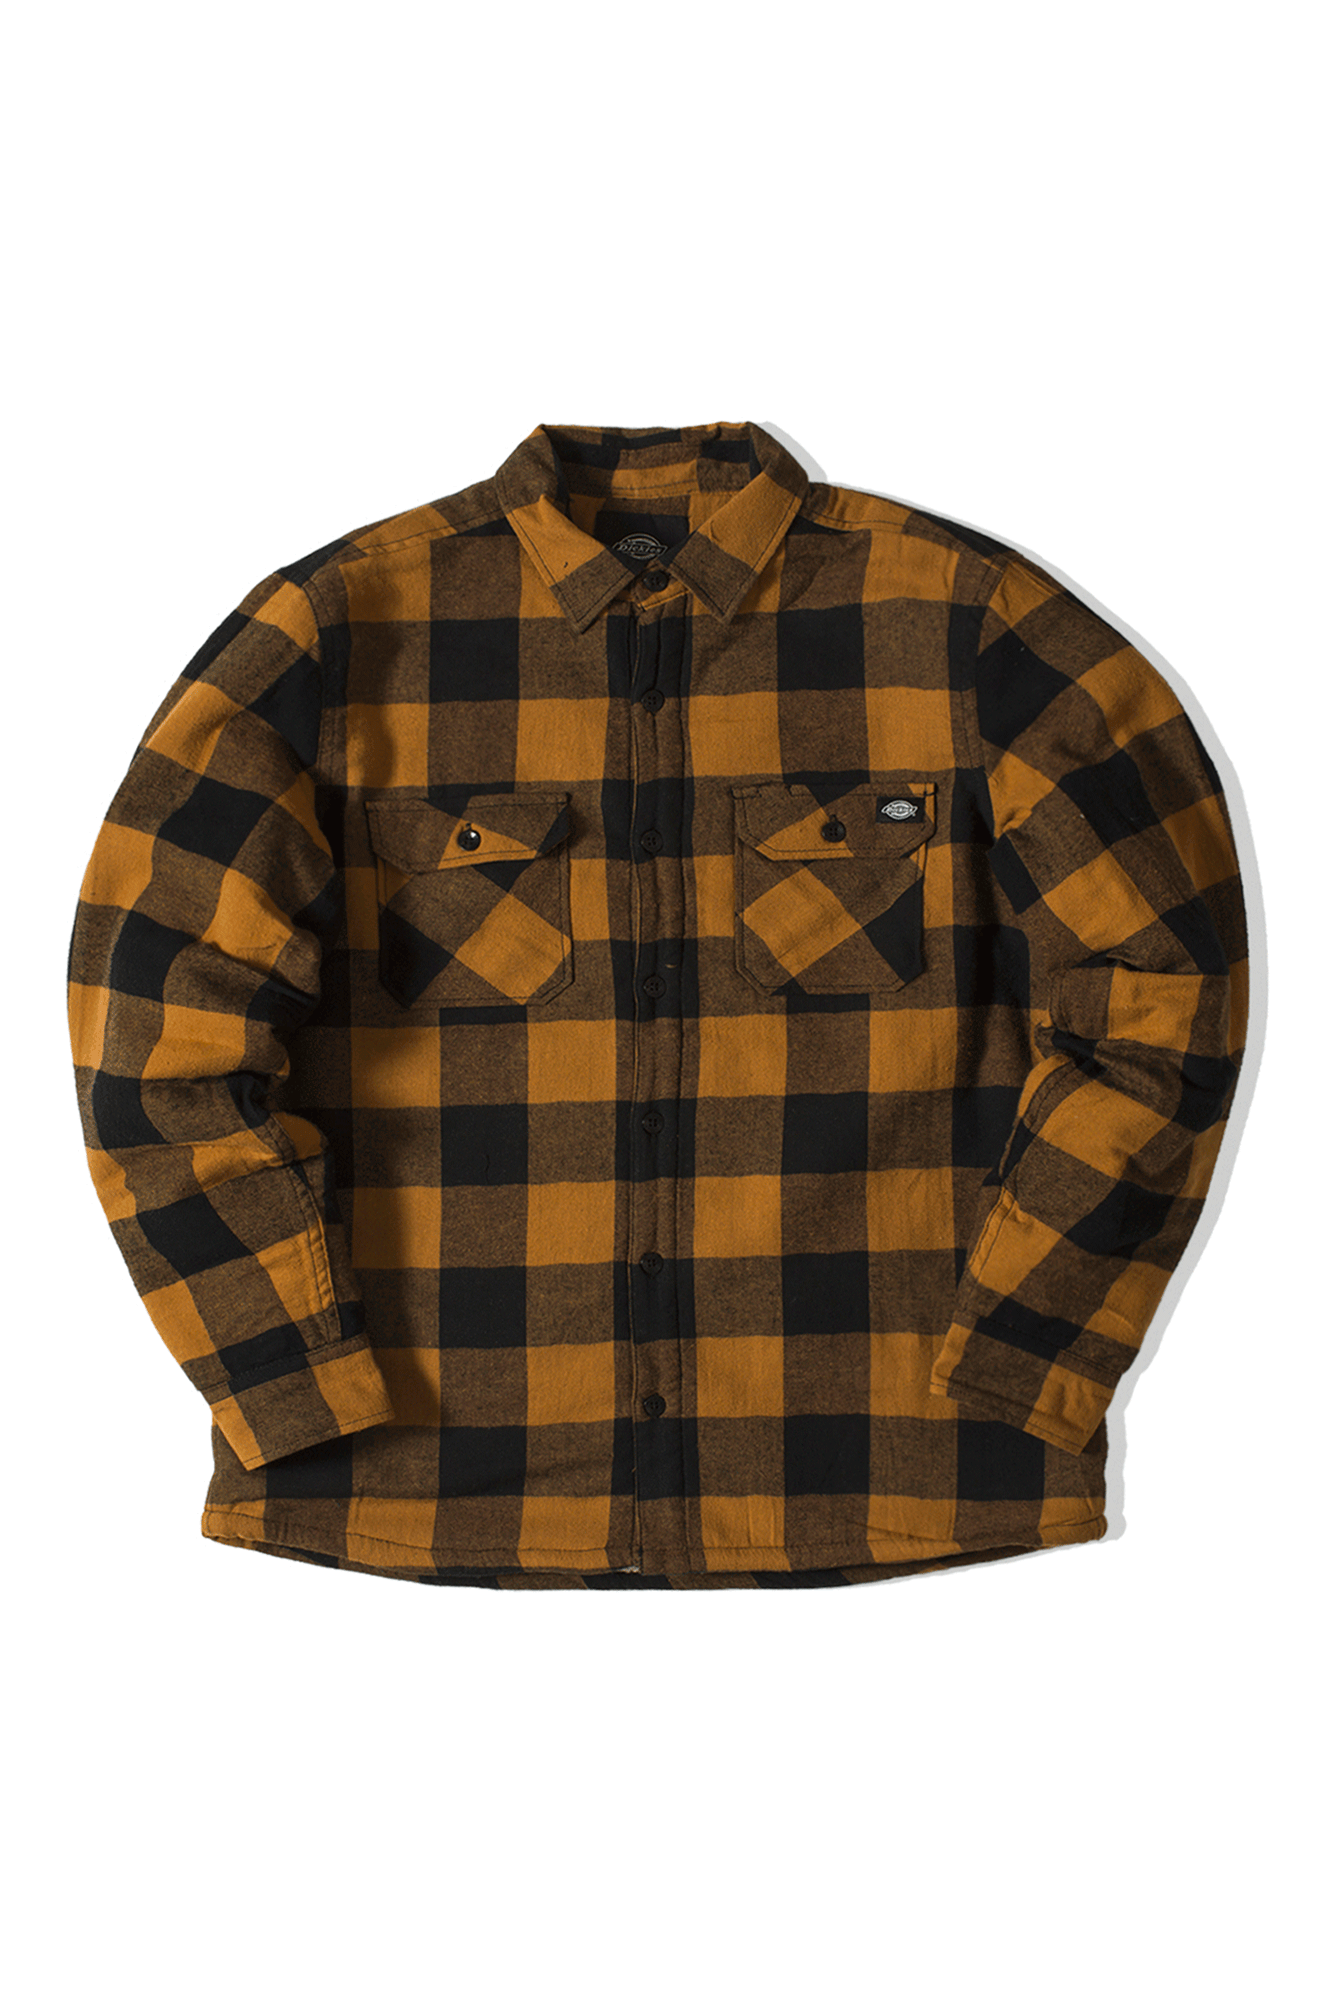 Dickies Camicie Sacramento Shirt Marrone DK520142#000#BD0#S - One Block Down